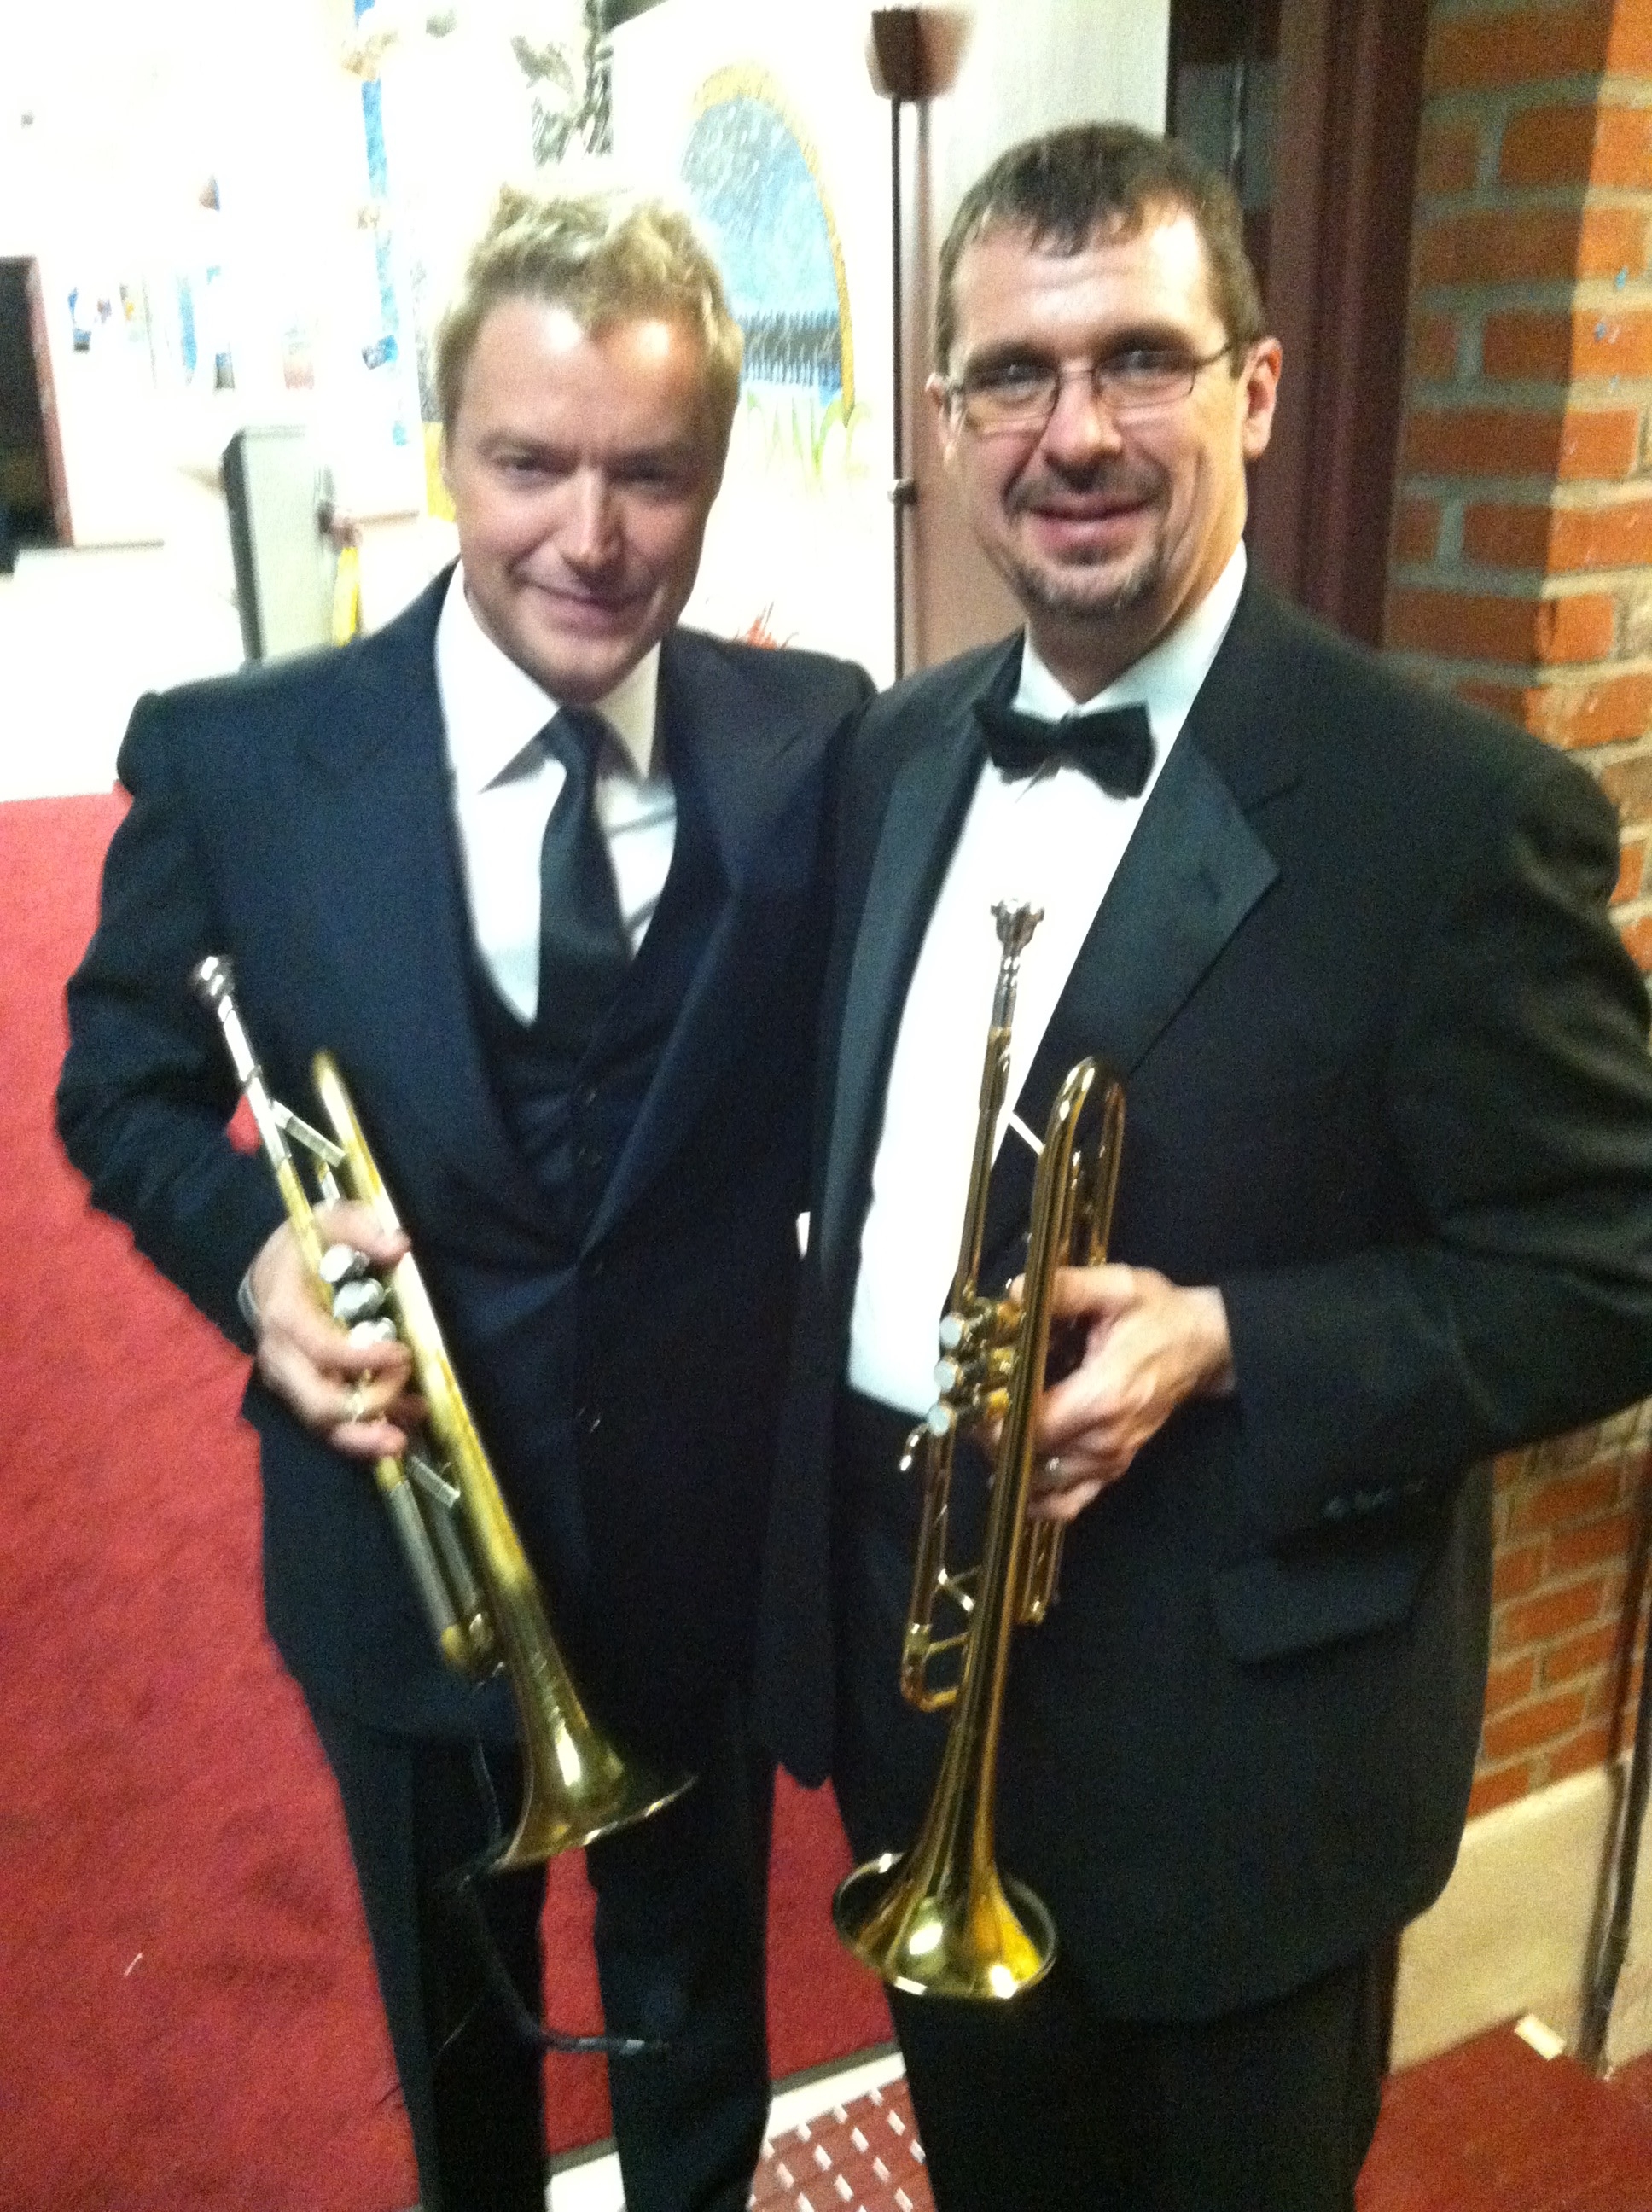 With Chris Botti at the Rhode Island Philharmonic